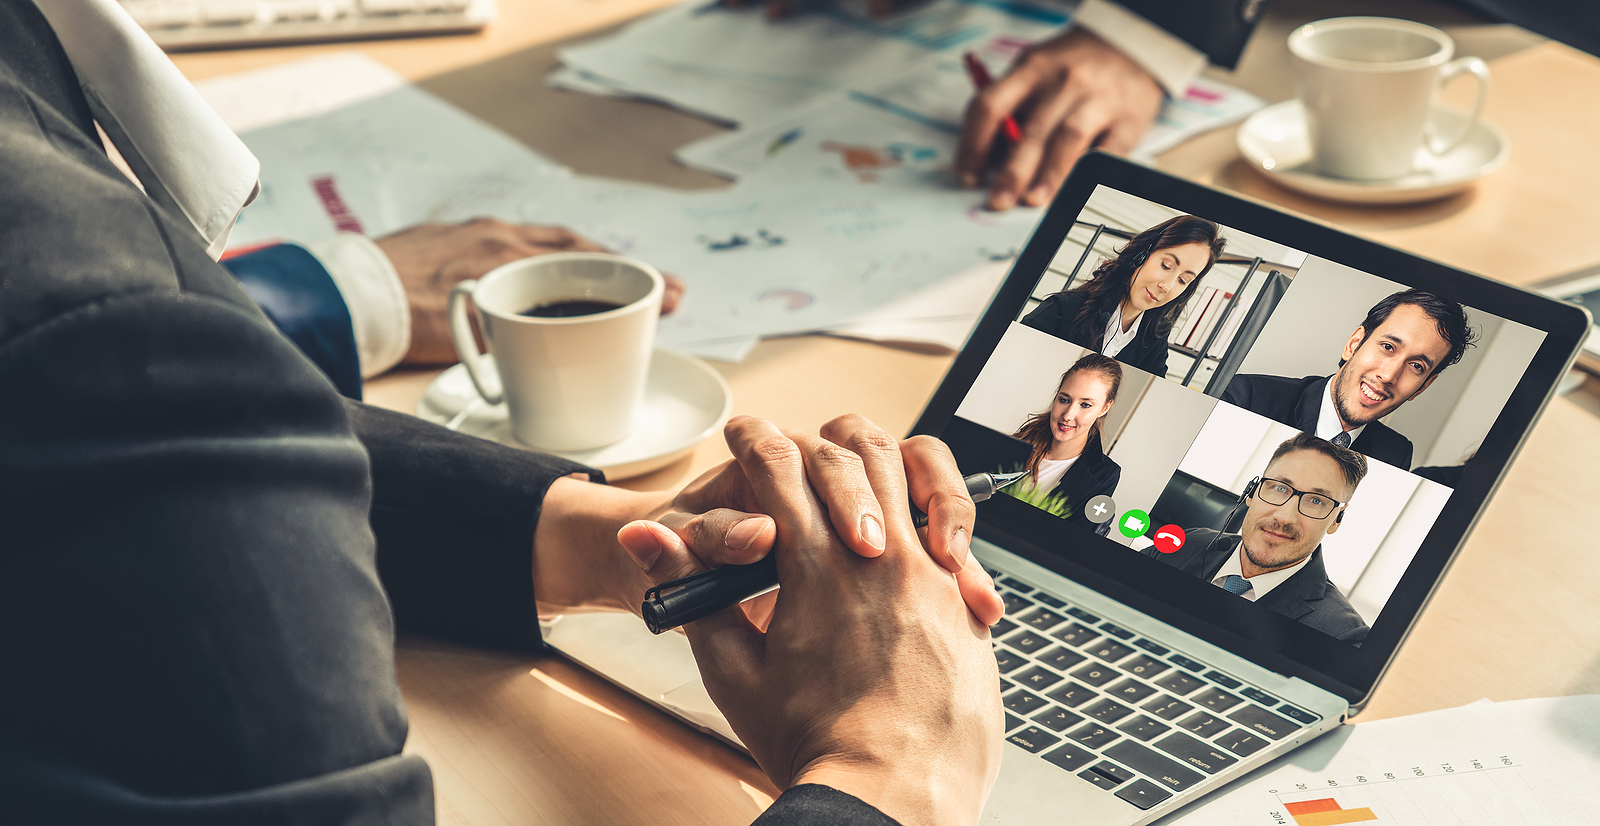 multiple people participating in group video business conference call